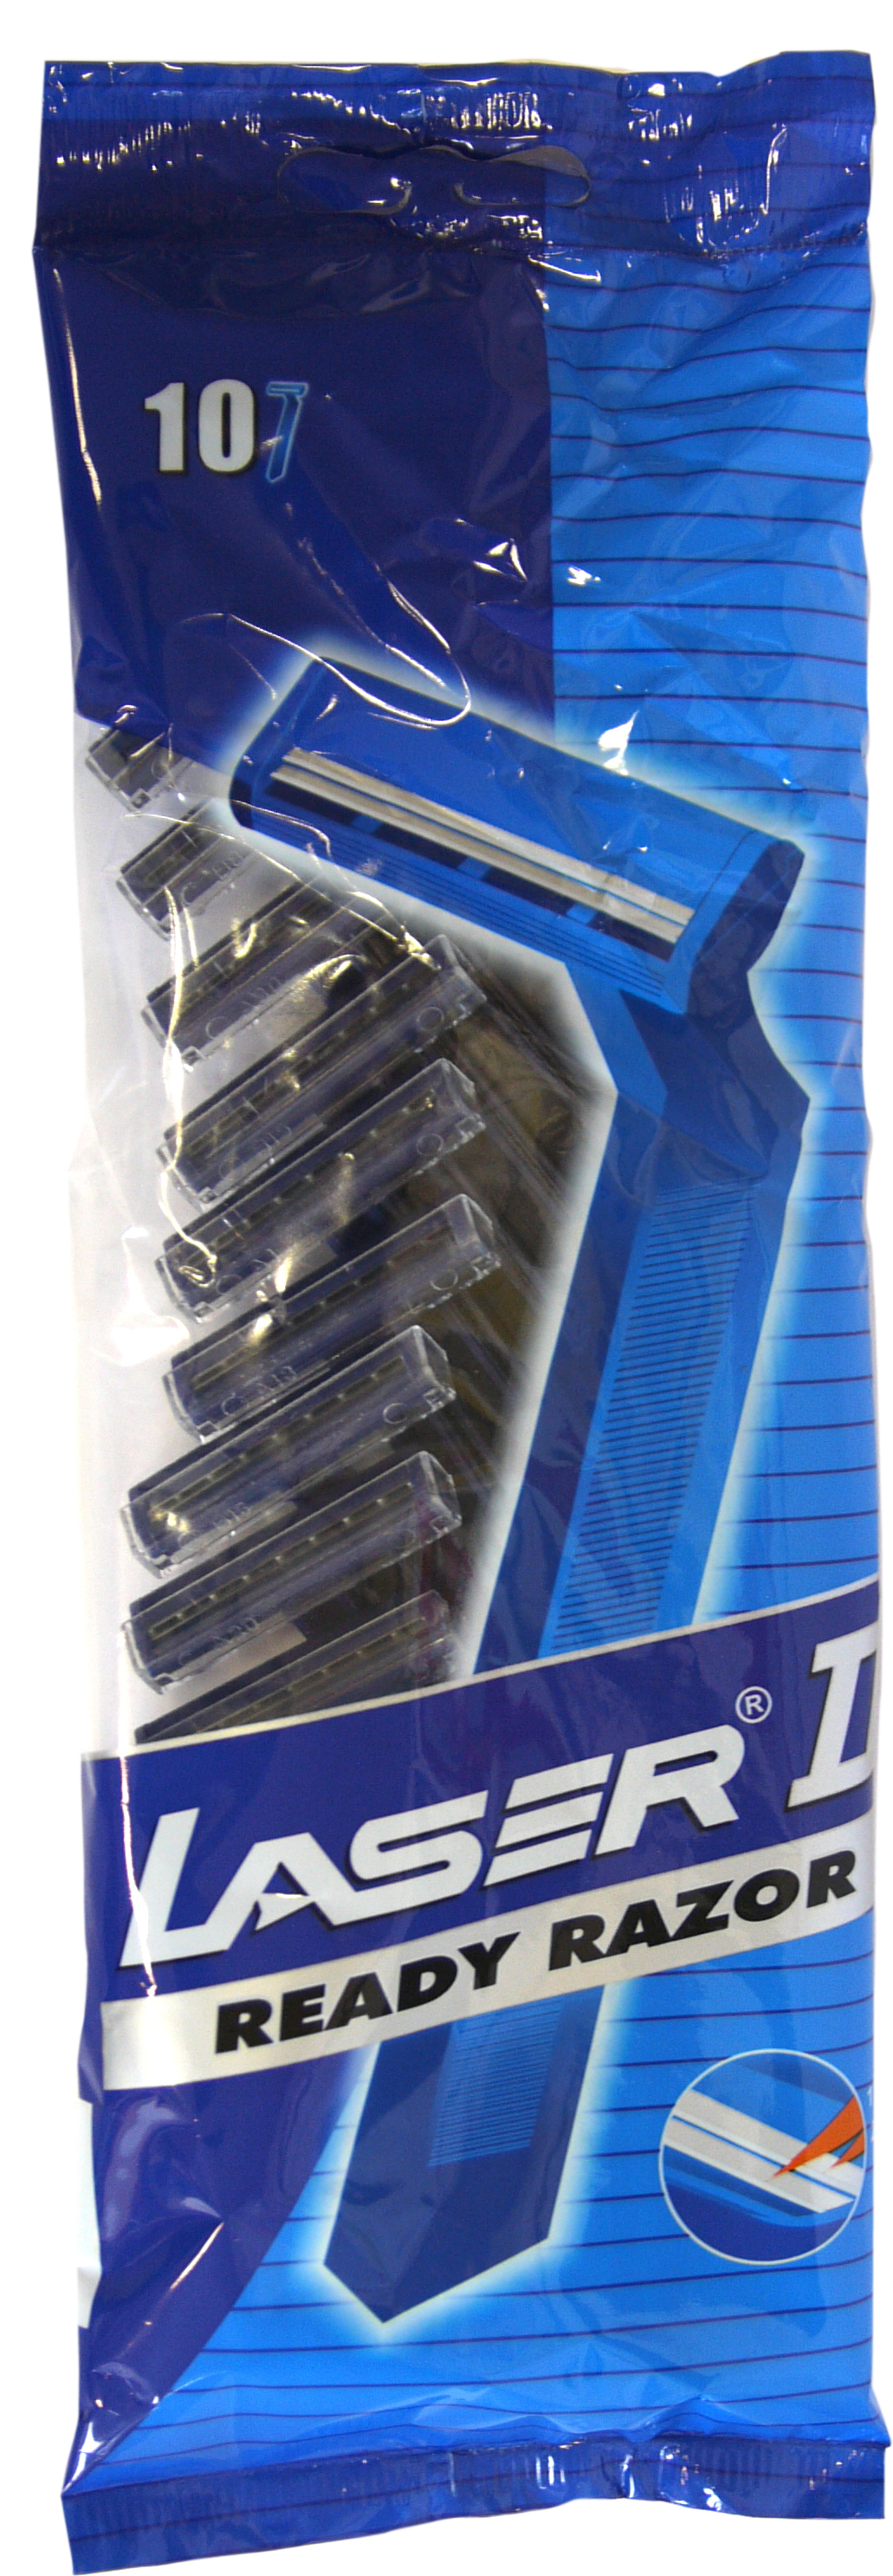 00442 - disposable razors double blade - set of 10